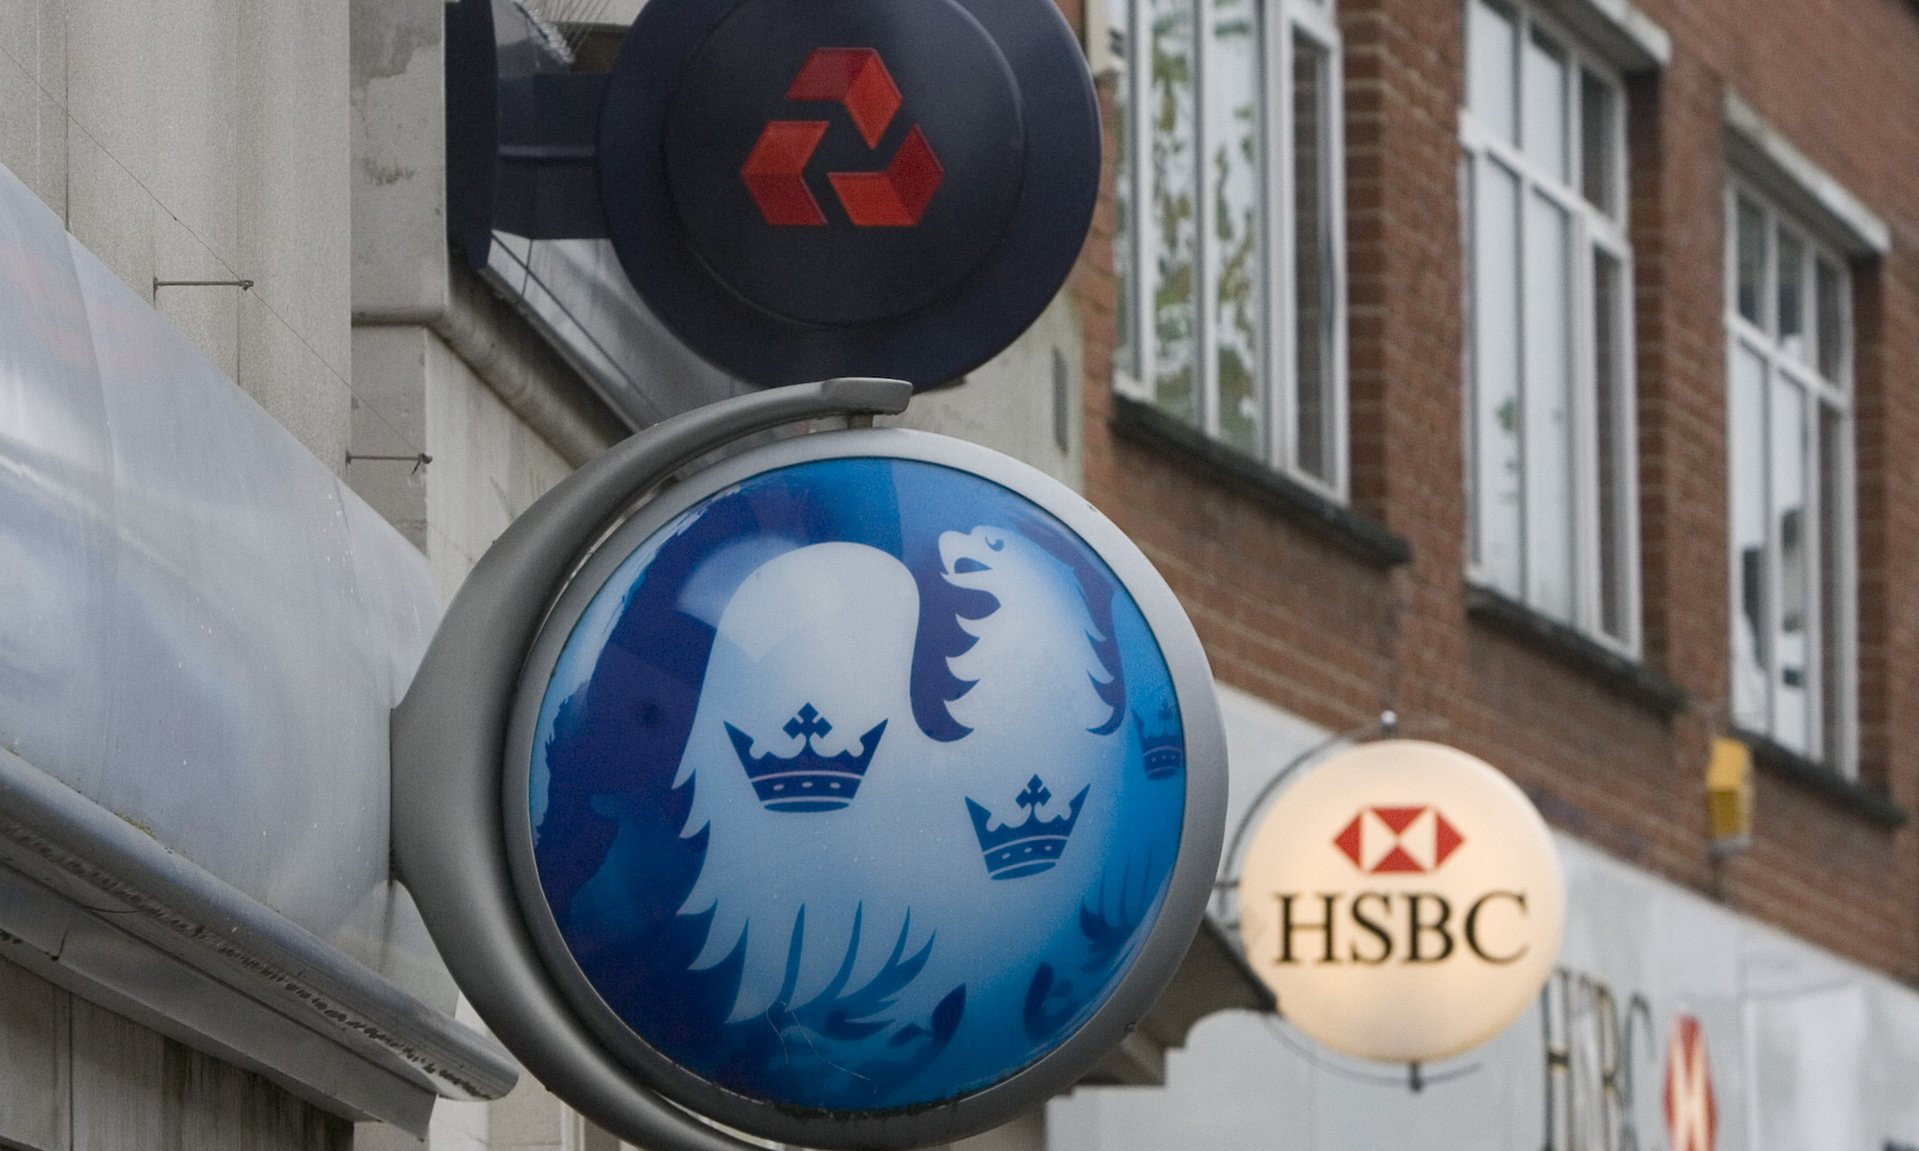 When the standard is launched, customers will be free to move banks and take their data with them as easily as switching their telephone or gas provider. Photograph: Chris Ratcliffe/Rex Shutterstock